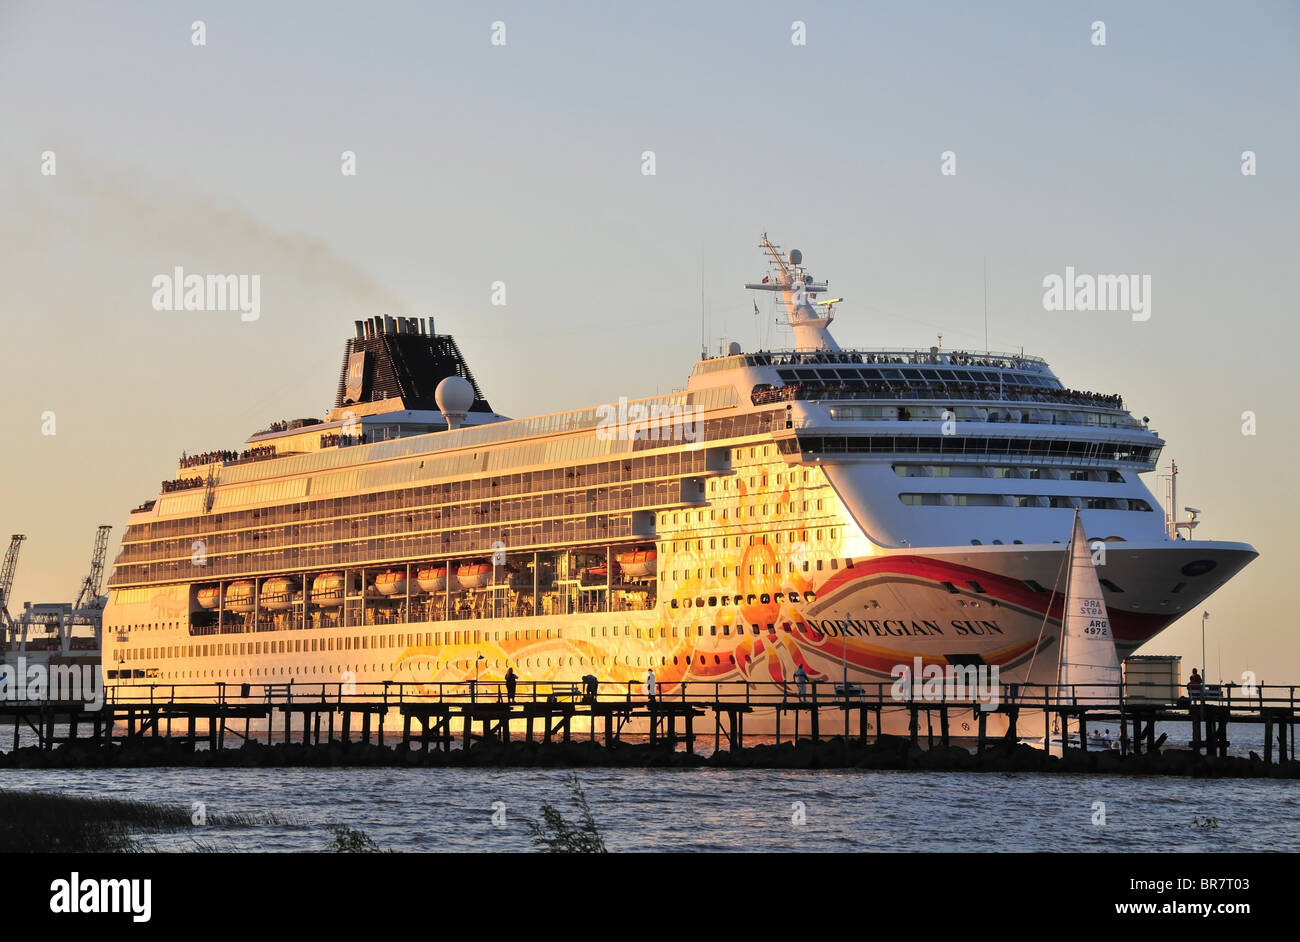 Cruise ship 'Norwegian Sun' turning into the waters of the River Plate, past a pier at the Ecologica Costanera - Stock Image